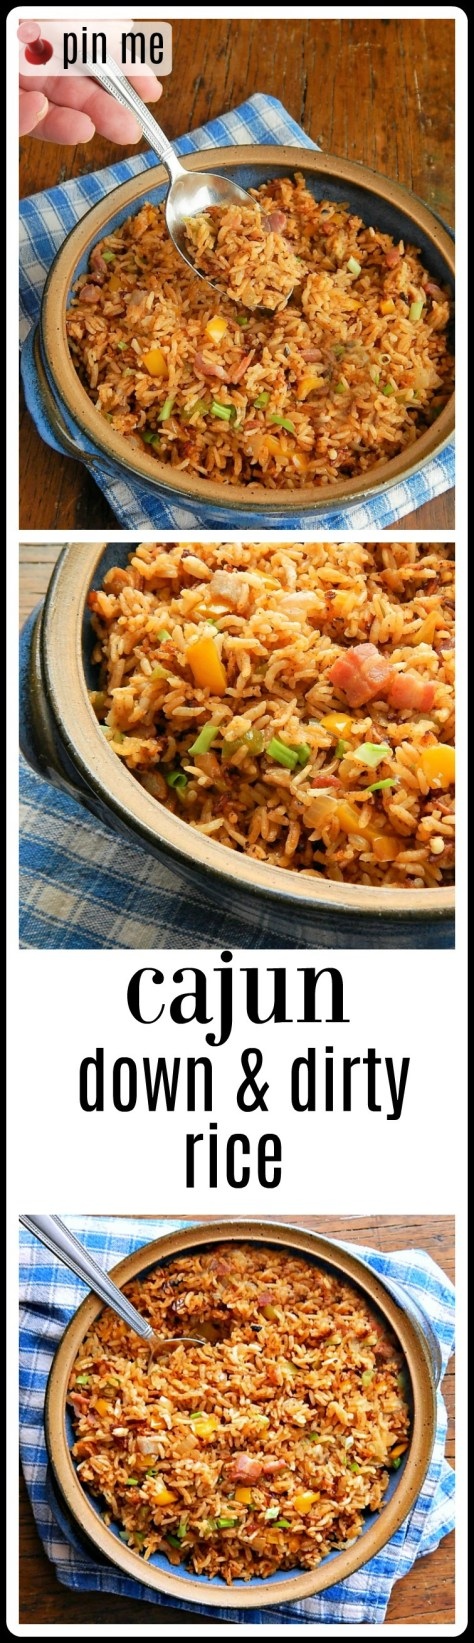 Down & Dirty Rice is a fresher take on the Cajun dish; this is a fantastic pilaf style rice, light and fluffy with a smoky flavor